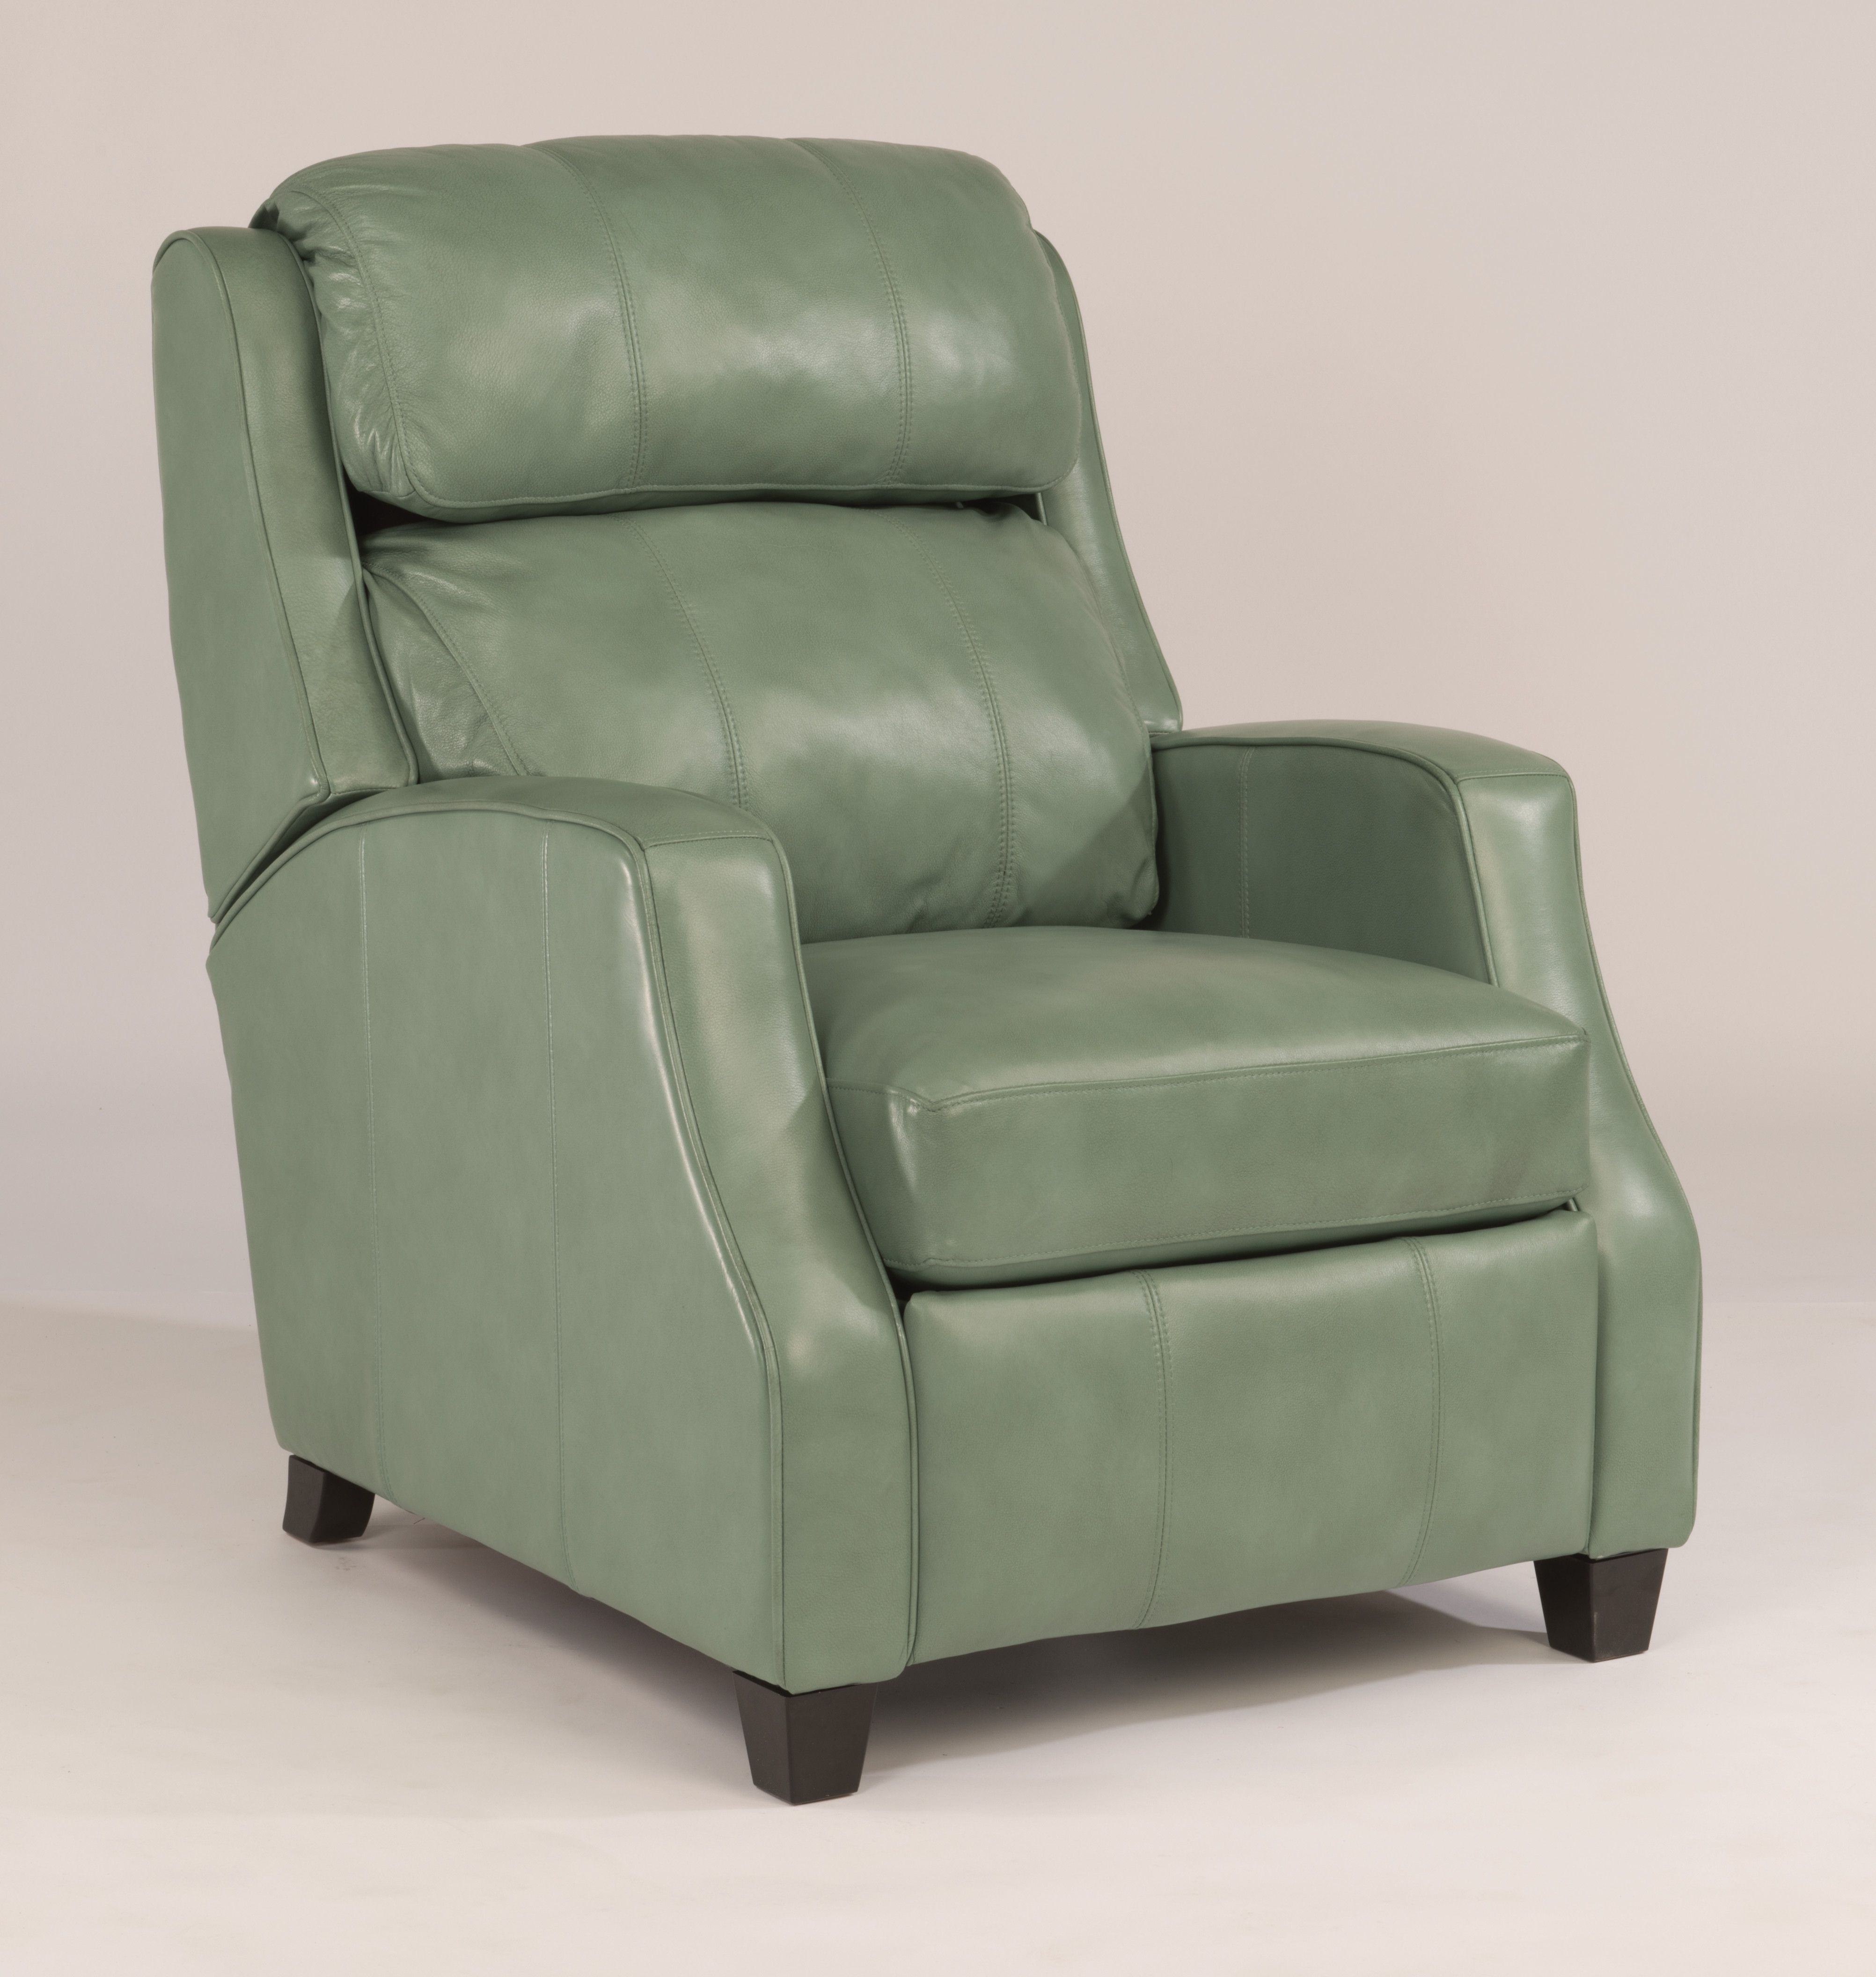 Flexsteel Chair Prices Cover Hire Dundee Pirouette Latitudes Recliner By 1103 50 Lsp22 Shown In 100 Leather 1299 Subject To Change Shopac Furniture